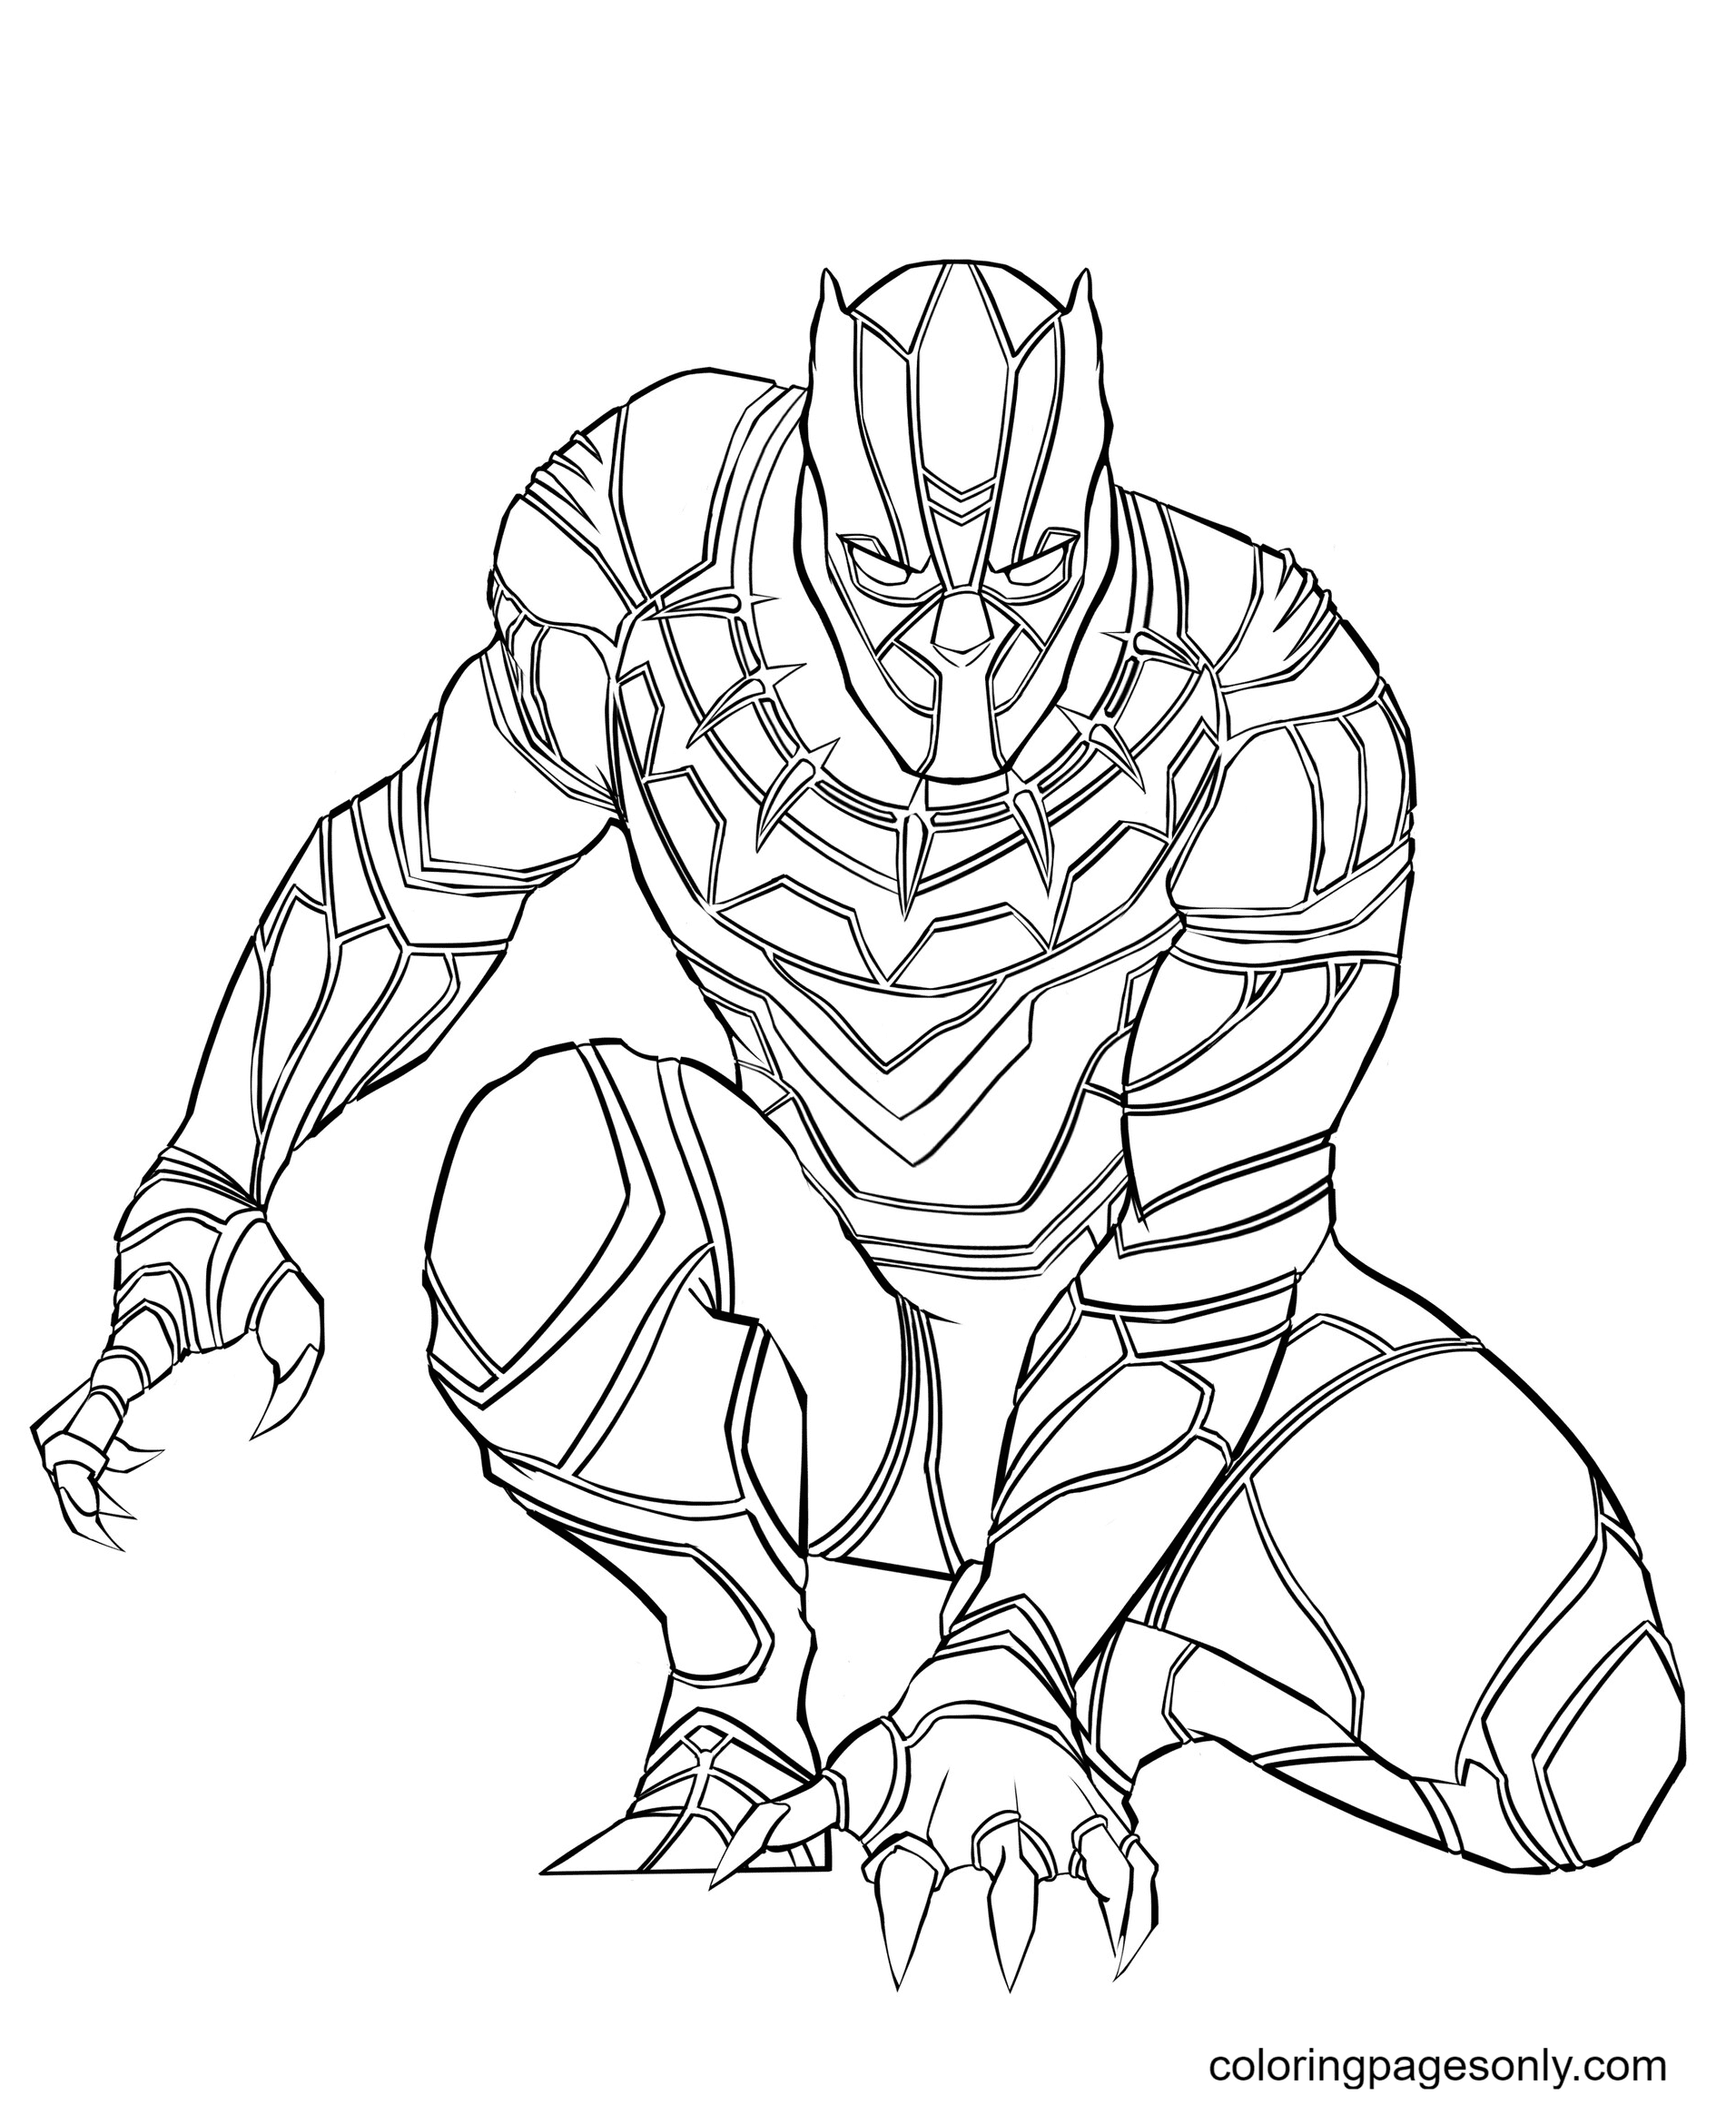 Marvel Black Panther Coloring Page